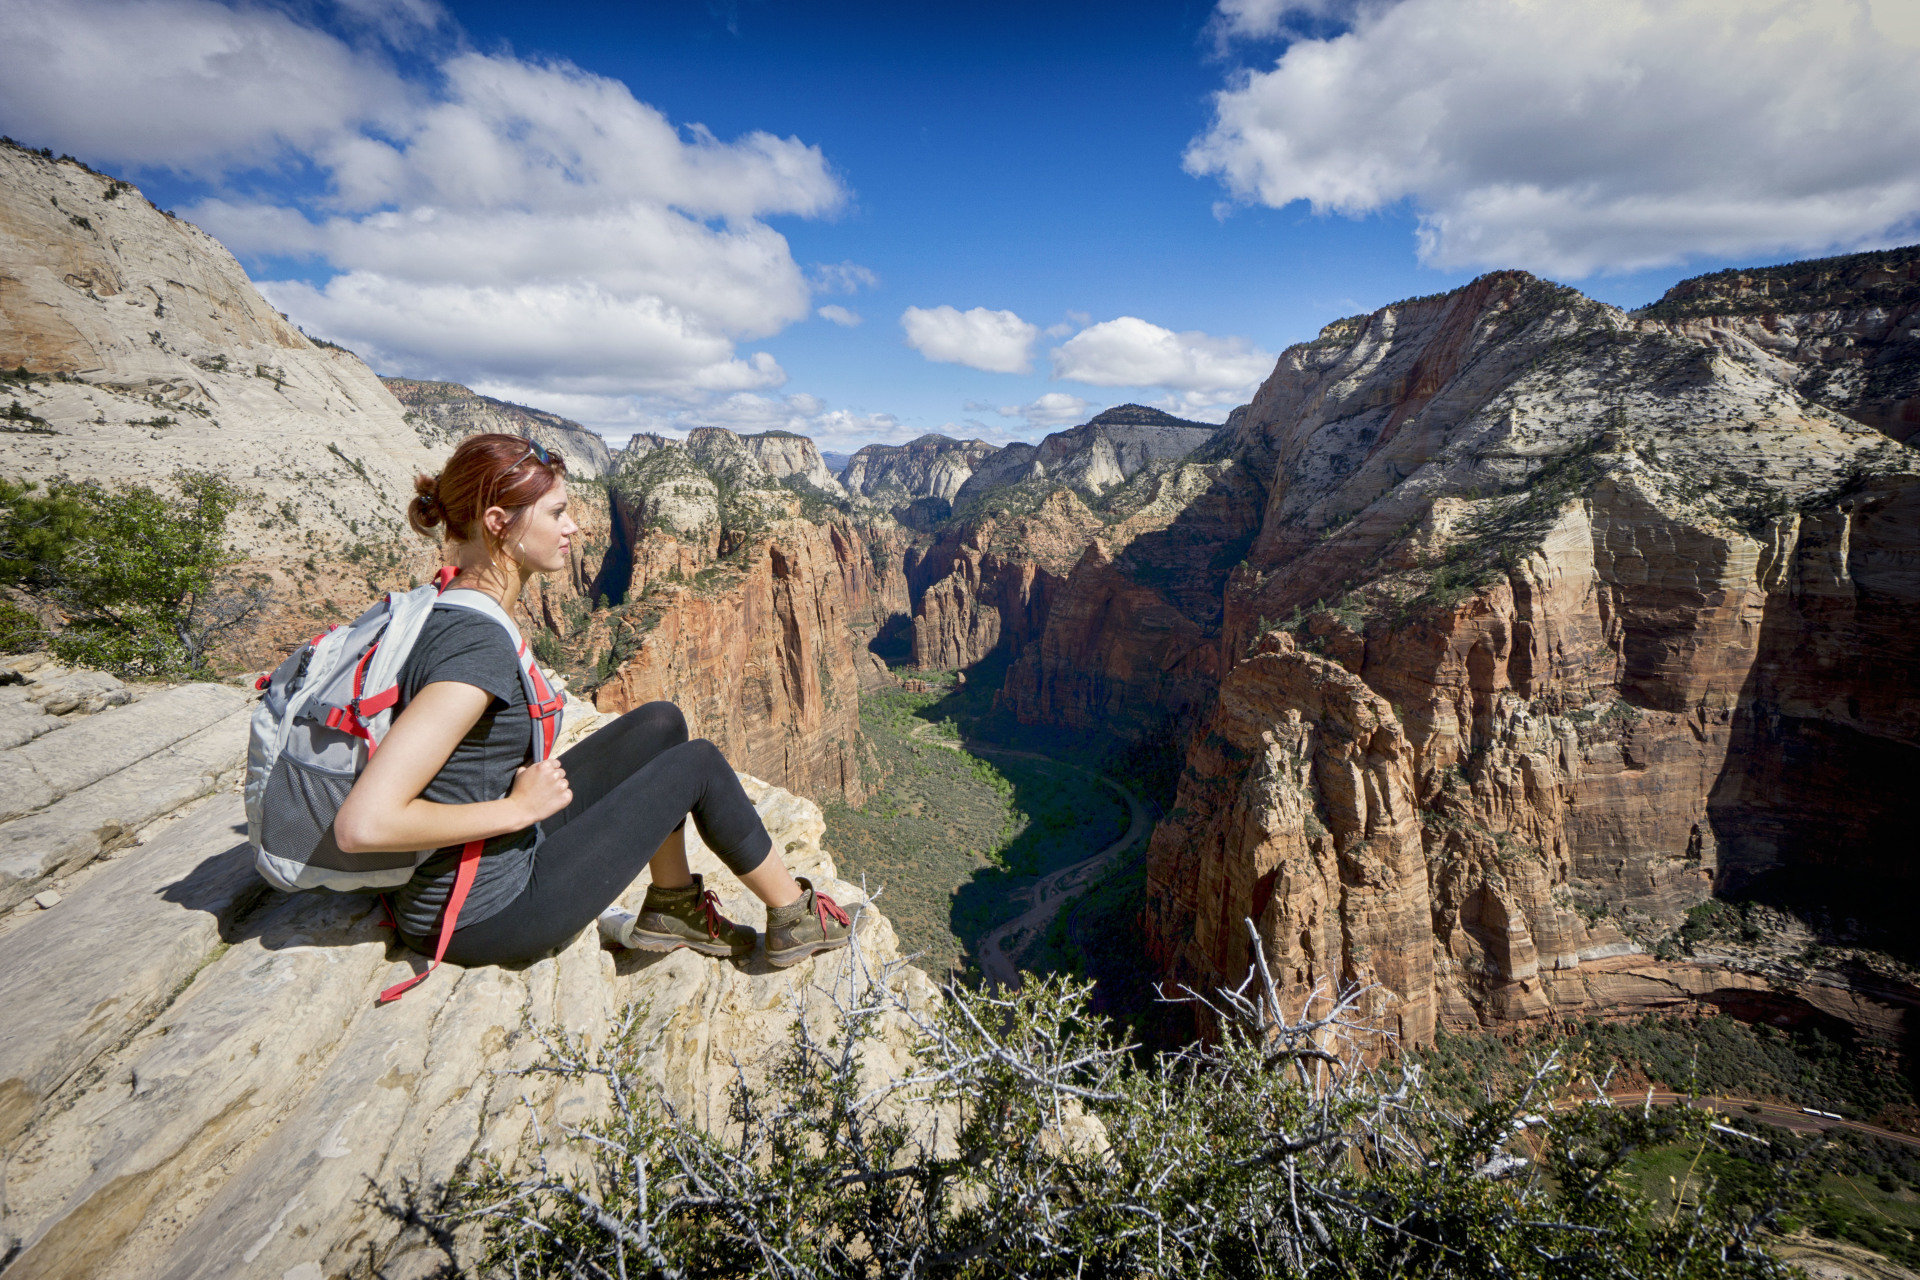 Girlfriend sitting on the side of a cliff overlooking zion national park from the top of angel's landing